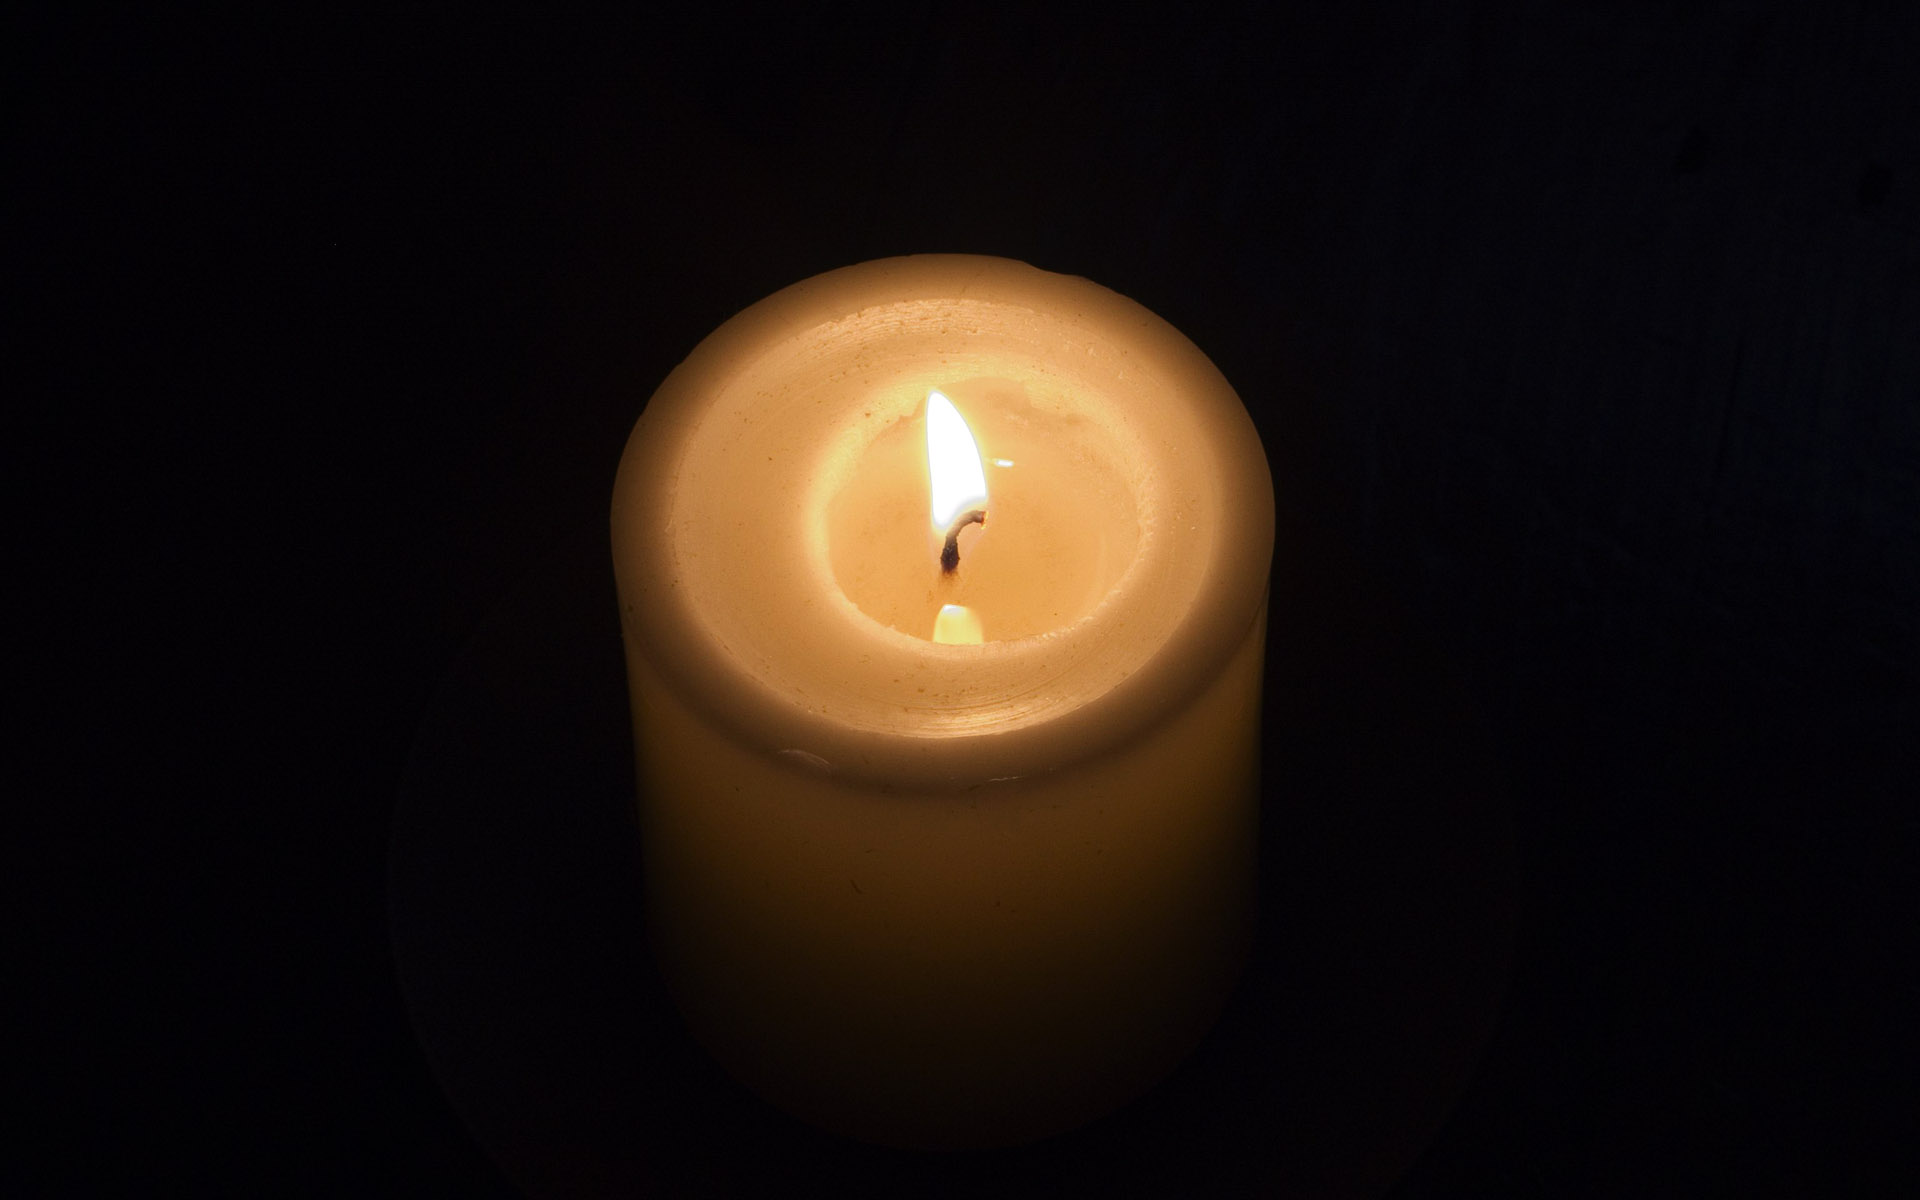 Candle wallpaper 7987